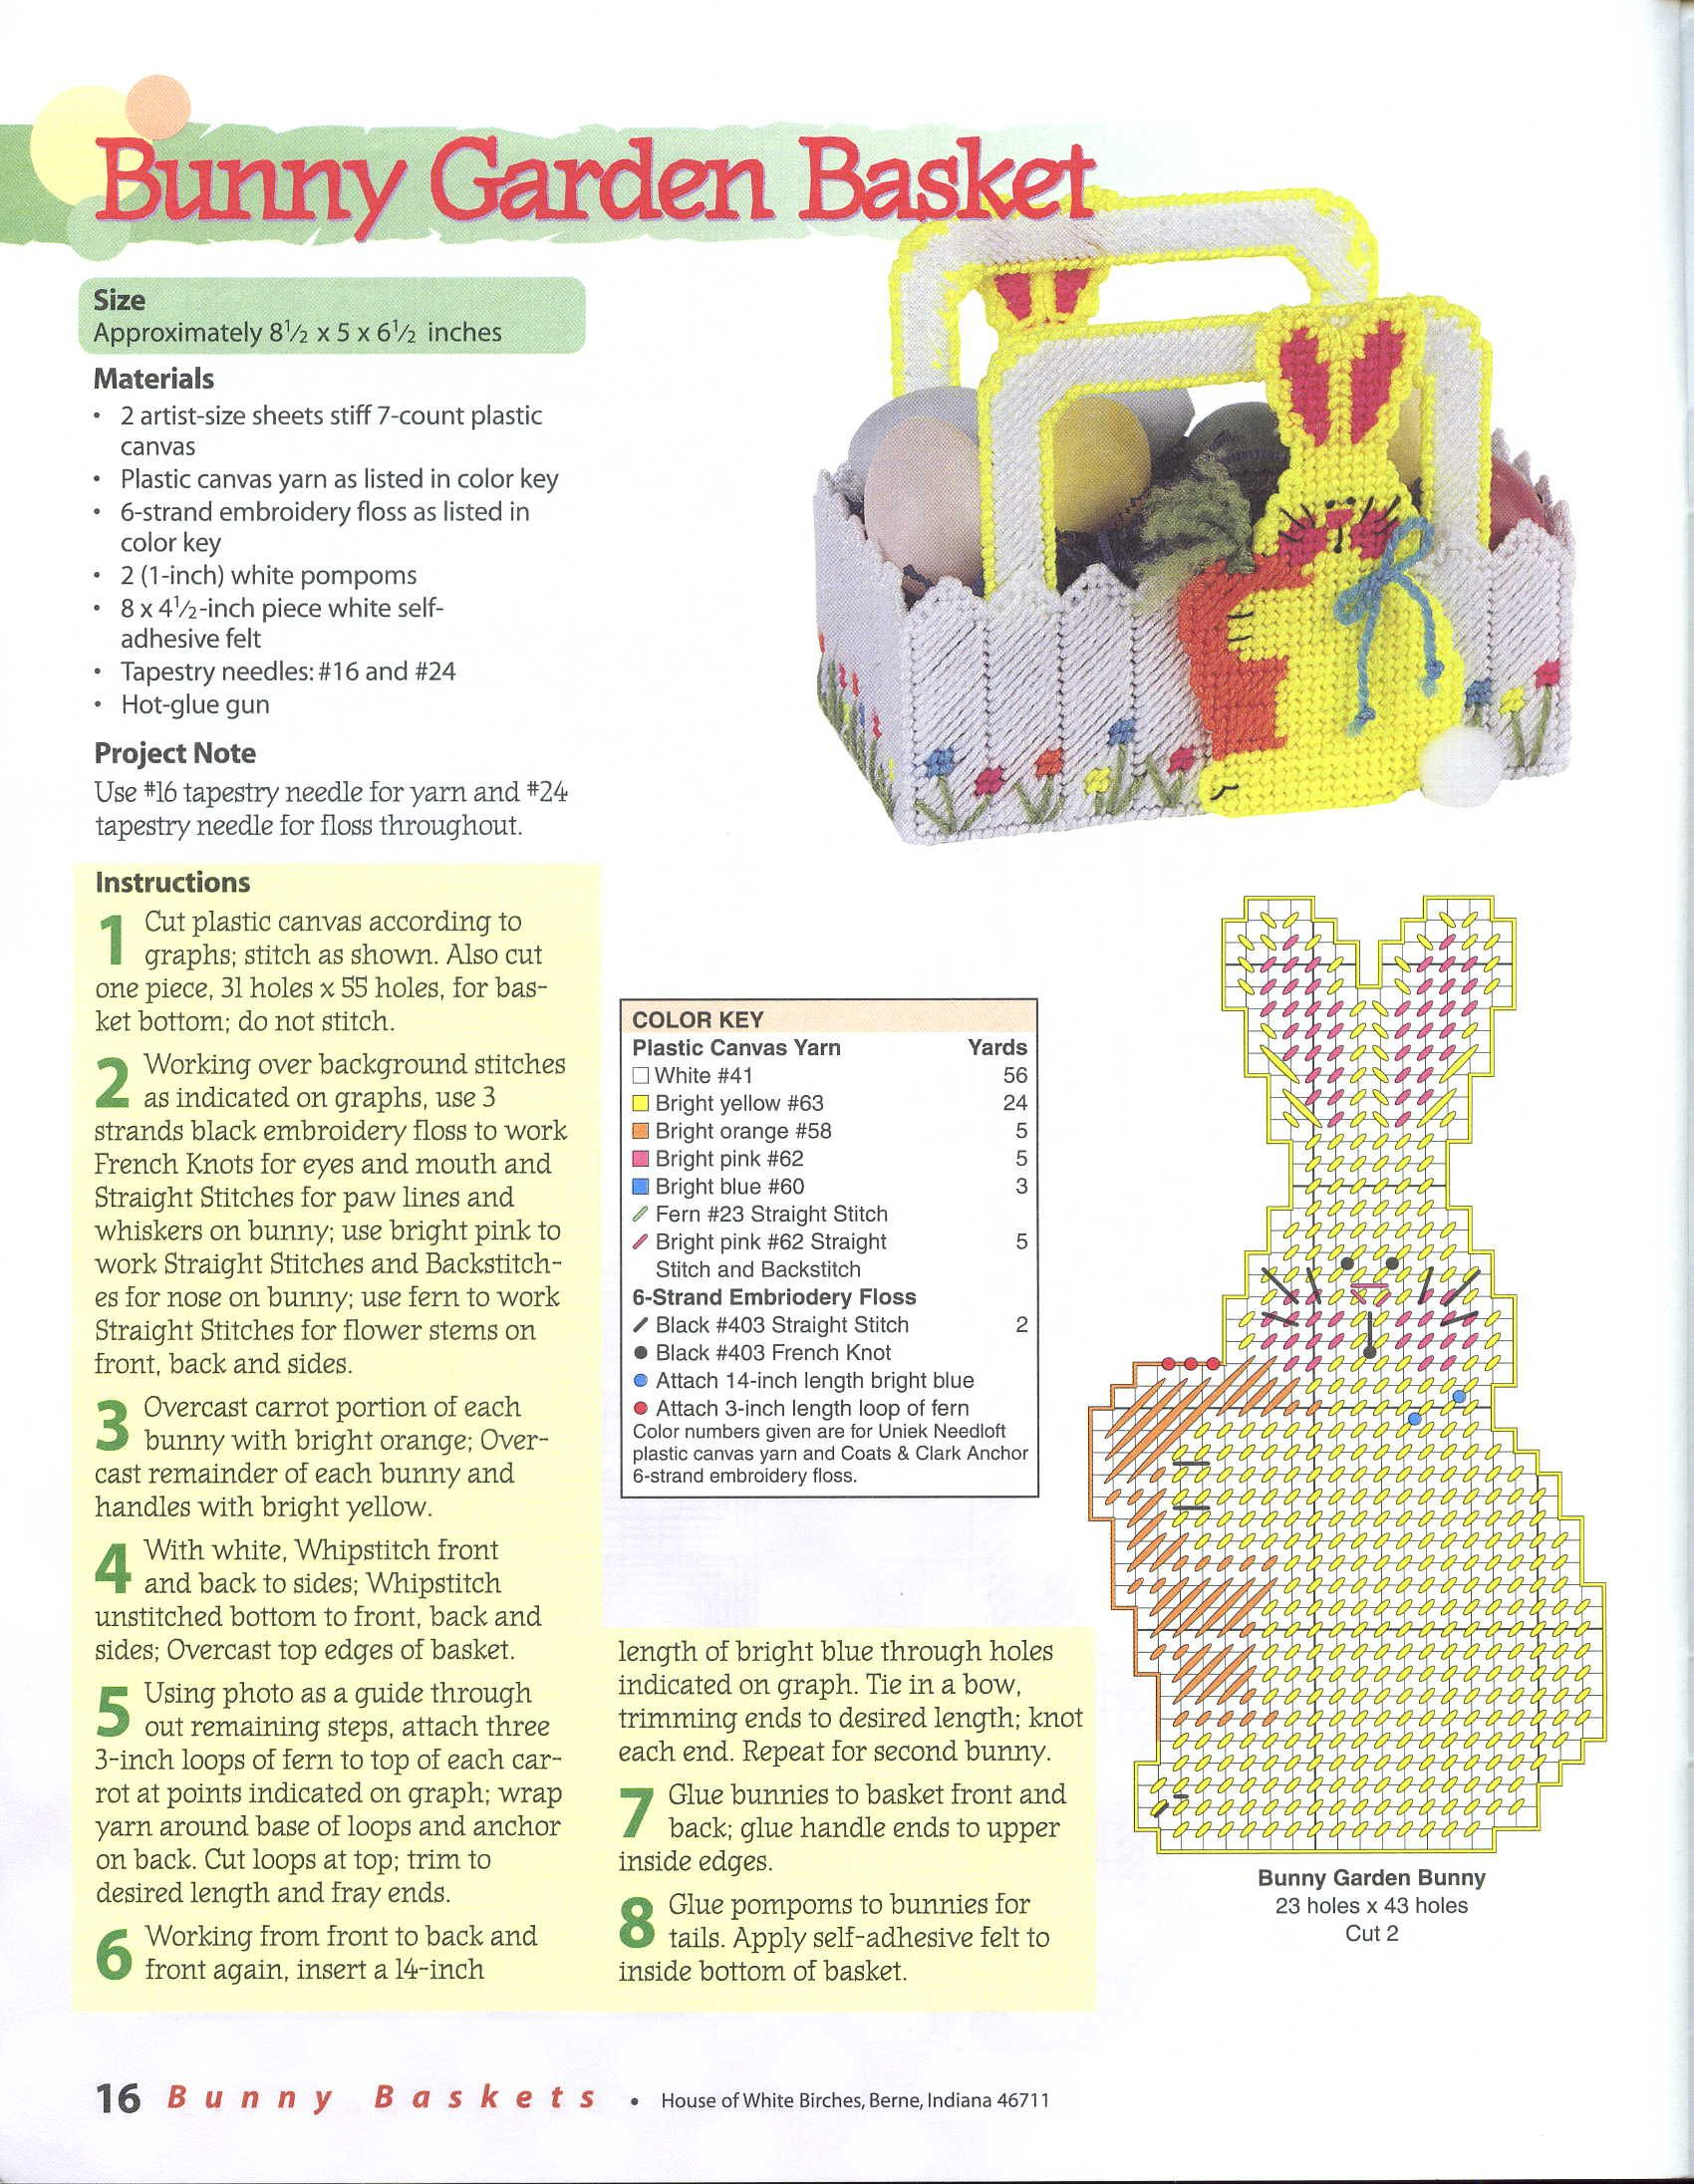 Bunny Basket 16 Plastic Canvas Easter Basket Plastic Canvas Patterns Plastic Canvas Ornaments